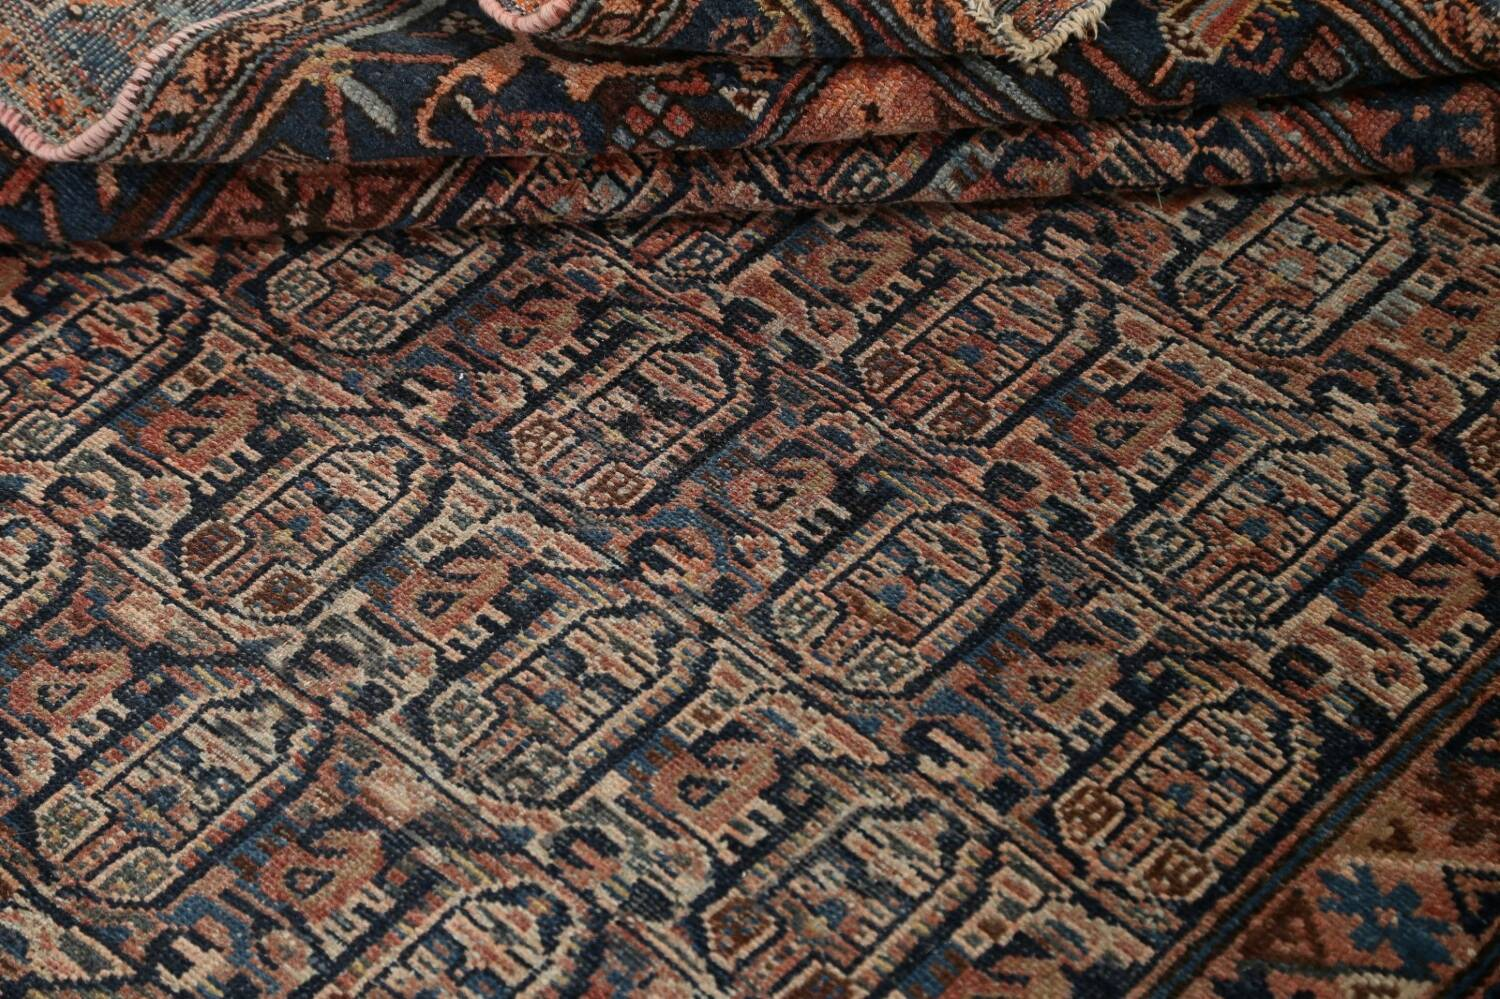 Pre-1900 Antique Tribal Malayer Persian Area Rug 4x6 image 14